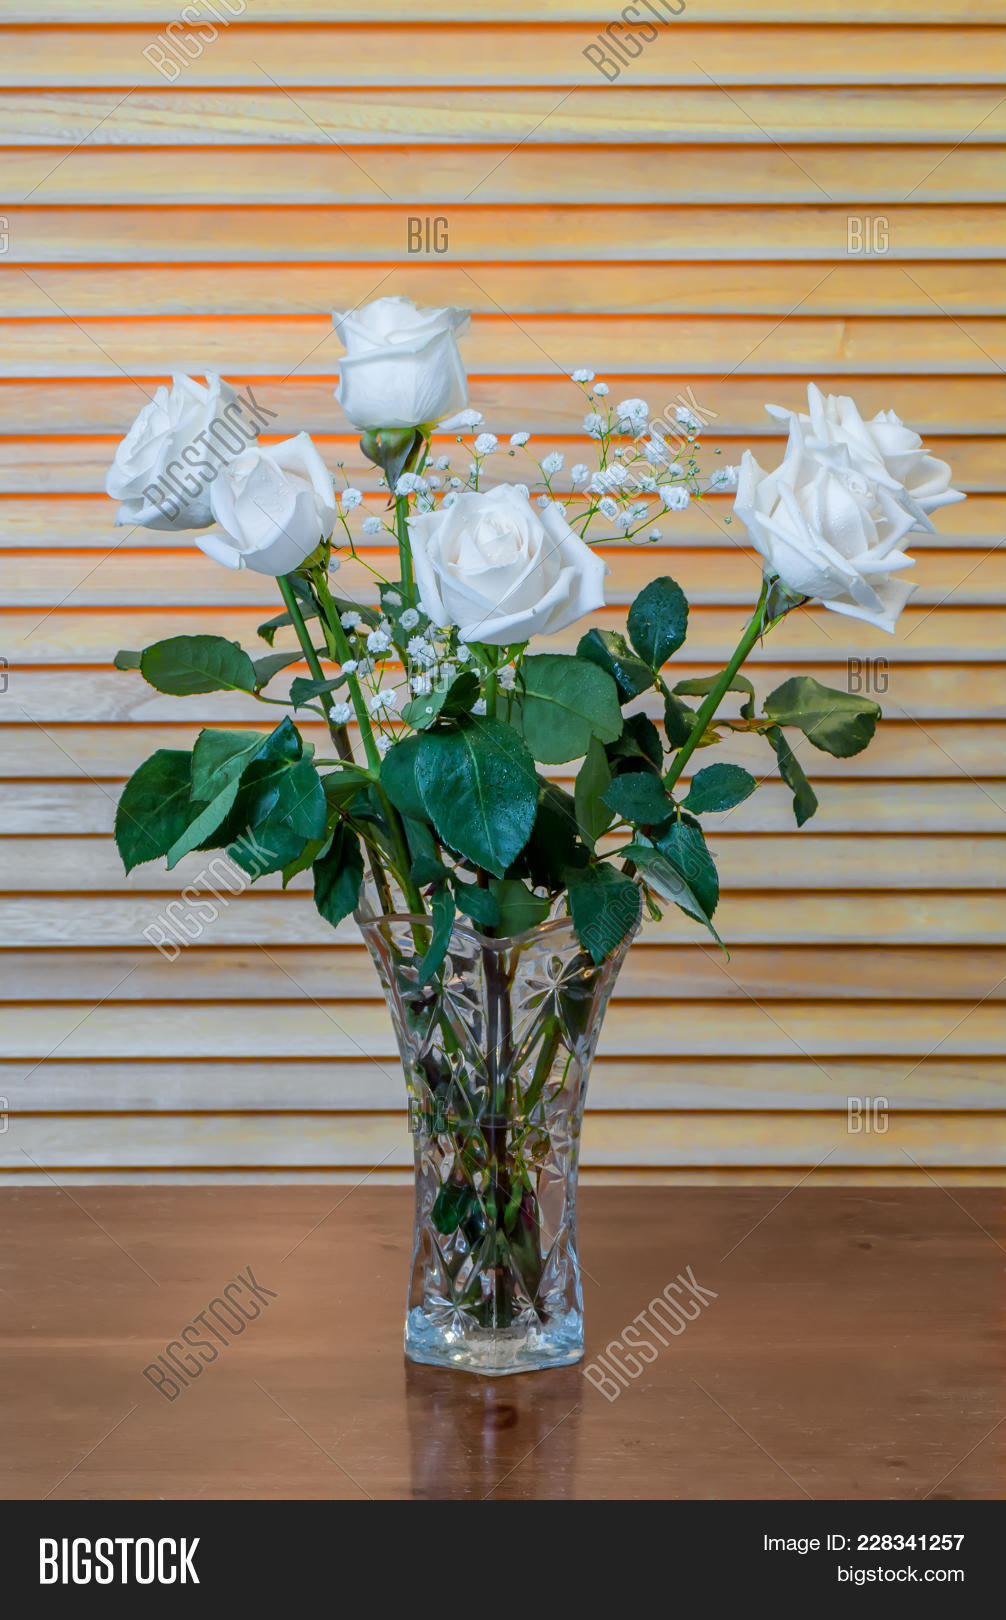 Plant Bouquet White Image Photo Free Trial Bigstock